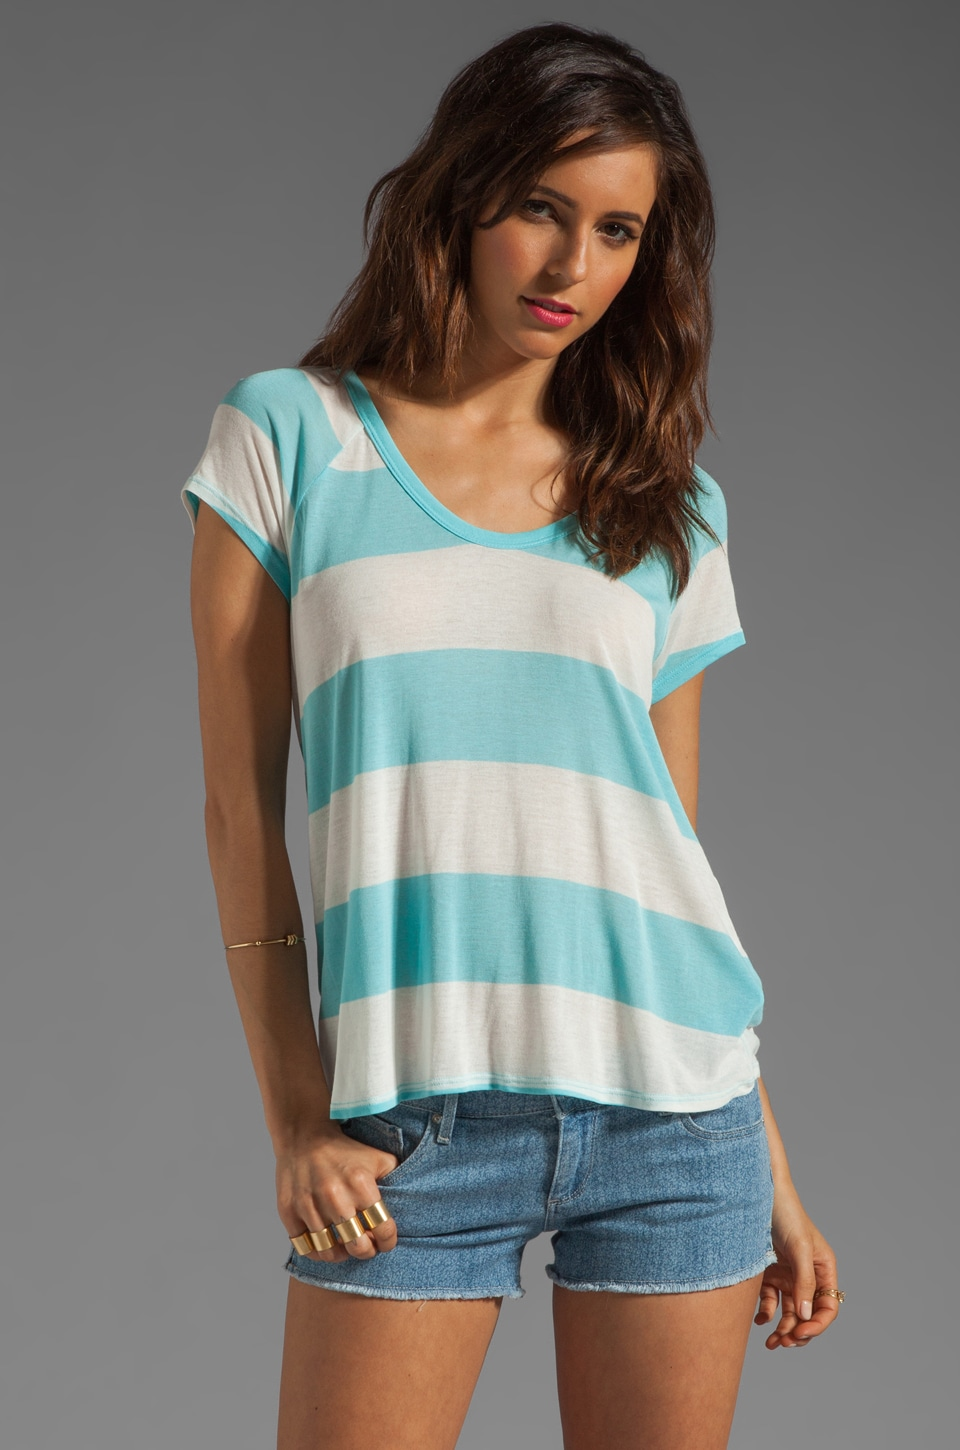 Soft Joie Apollo B Deck Stripe Top in Sea Green/Porcelain